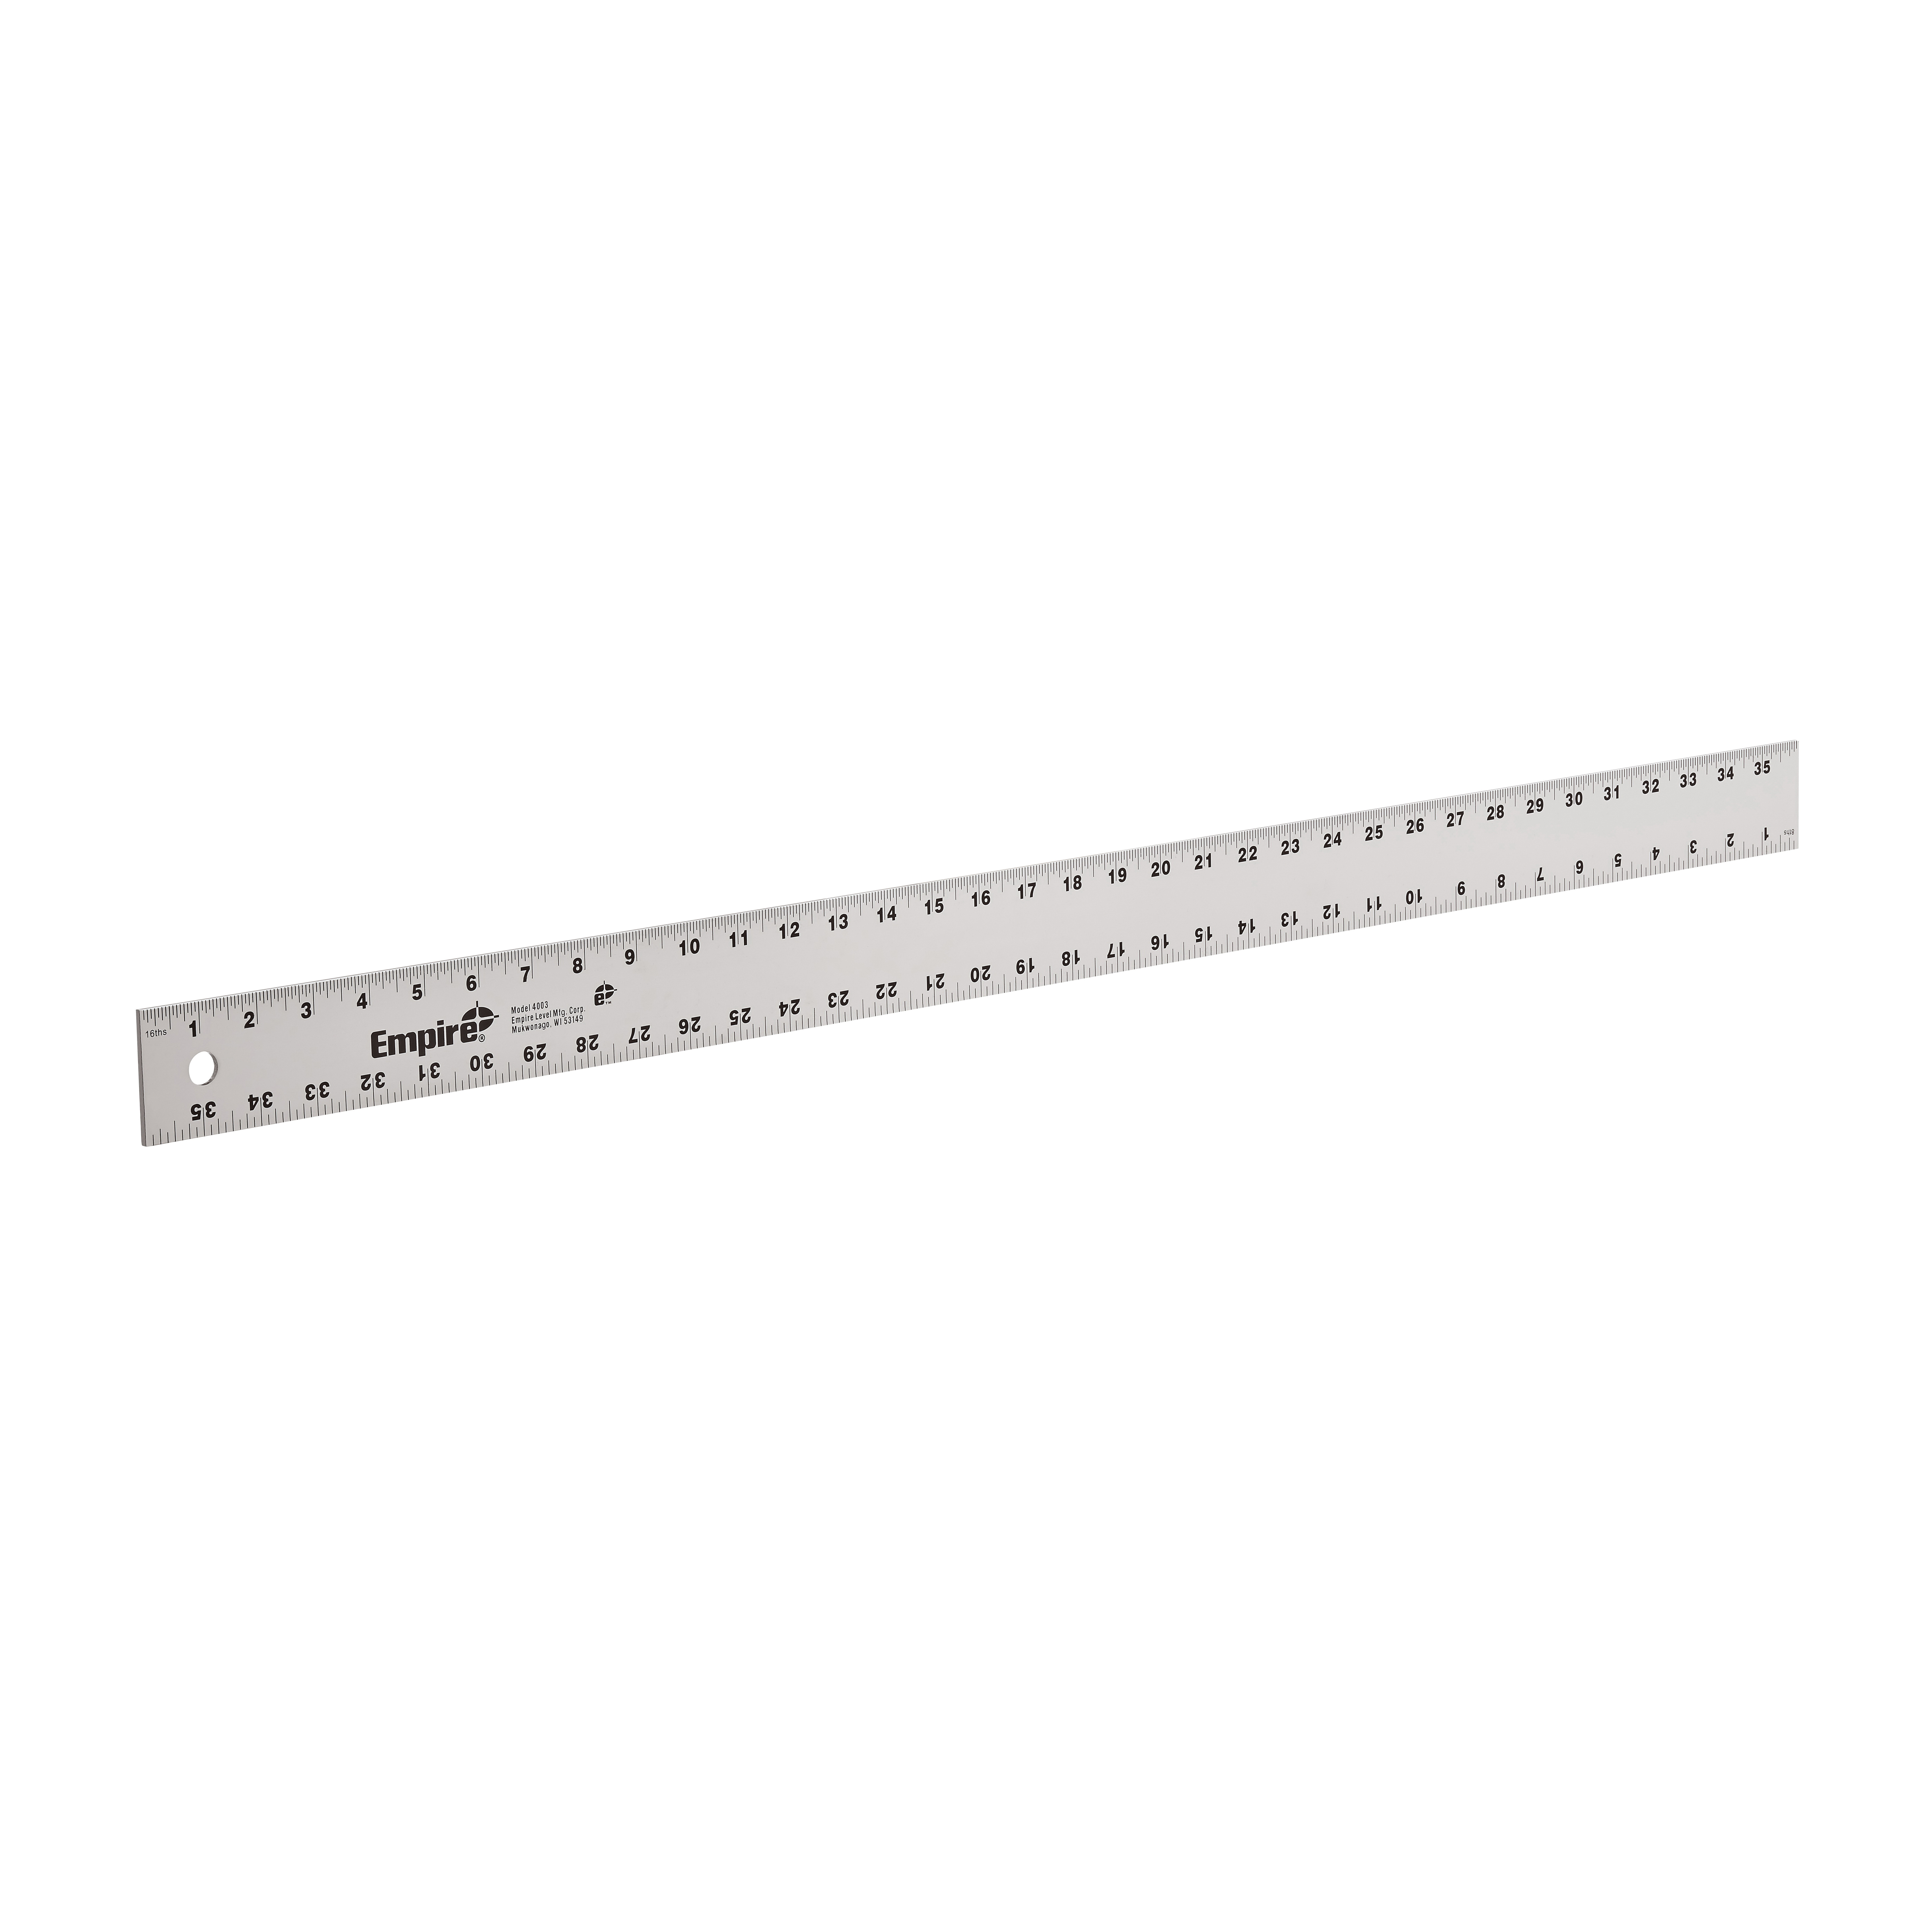 Empire® 4003 1-Stage Heavy Duty Straight Edge, SAE Measuring System, Graduations 8th and 16th Graduations, Aluminum